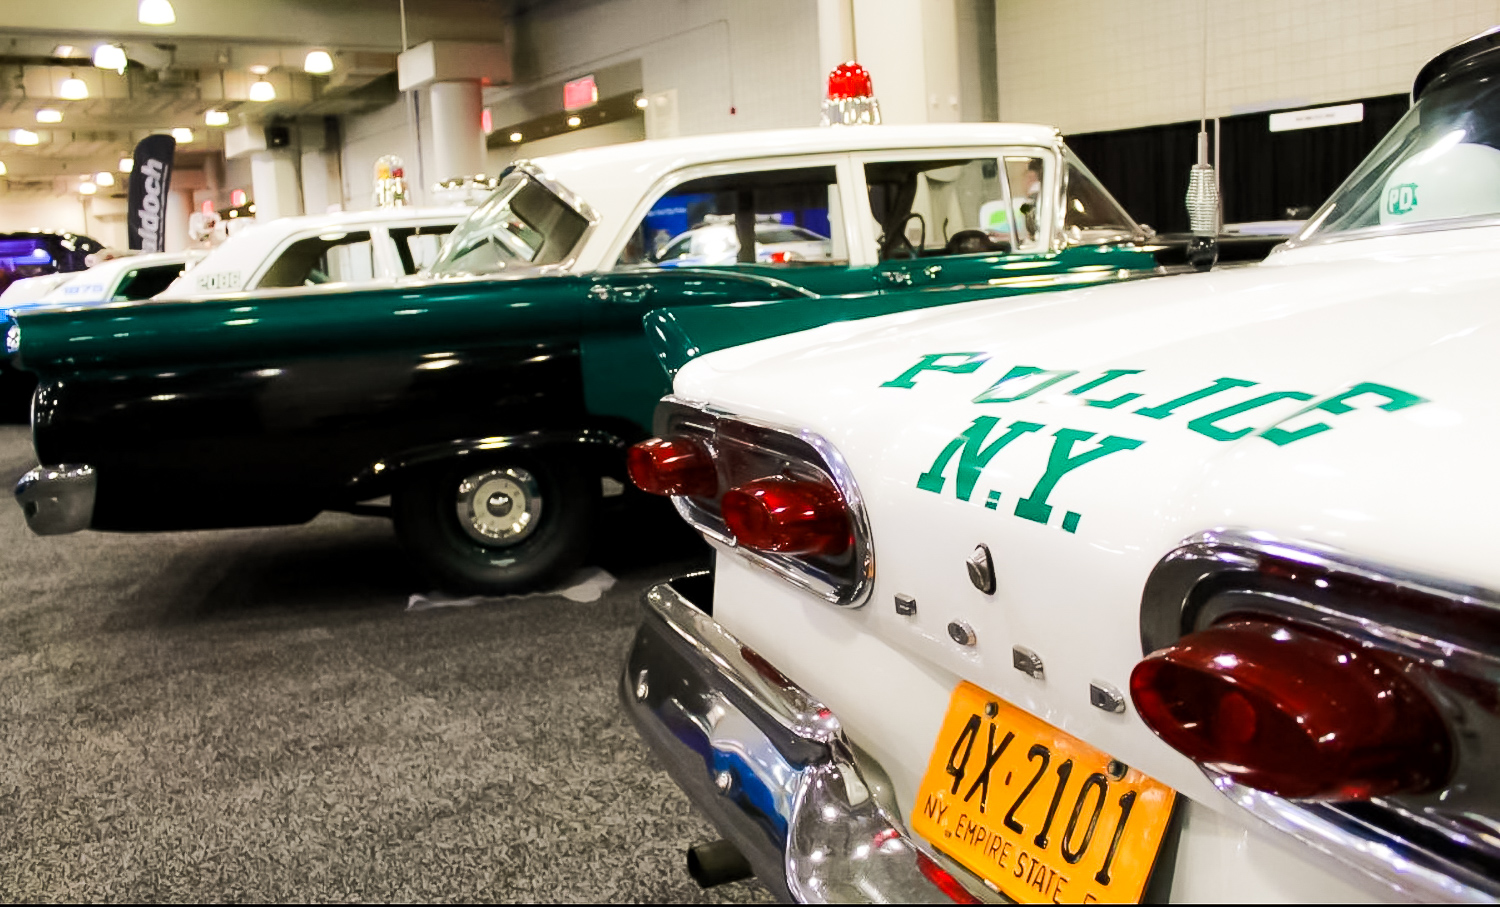 FORD CUSTOM 300 – Collection of classic NYPD police cars dating way back to the 1950s.